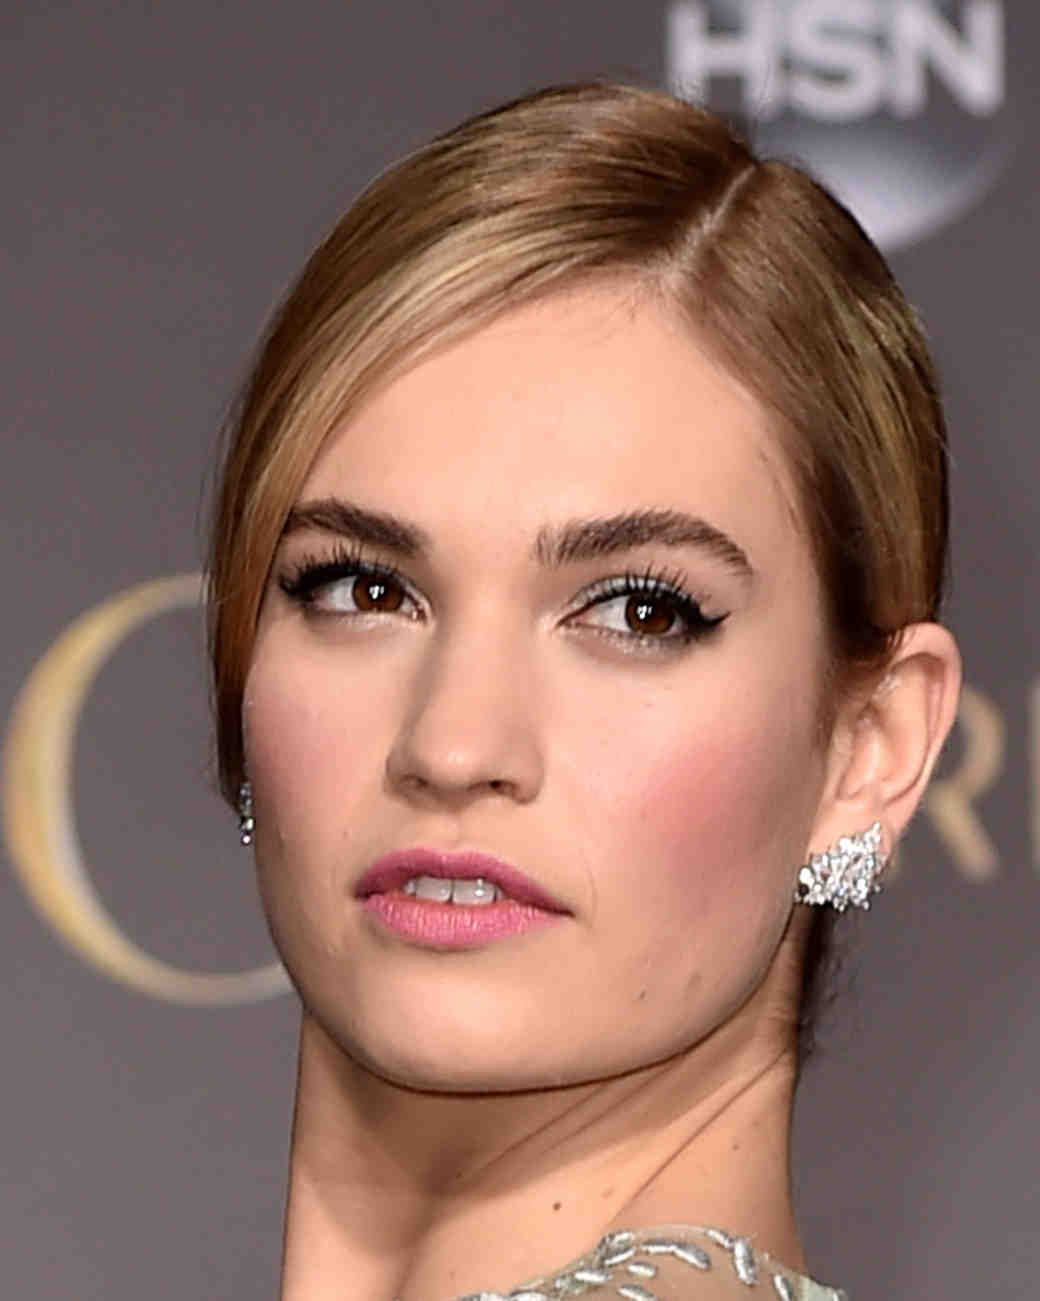 celebrity-wedding-makeup-lilyjames-0915.jpg